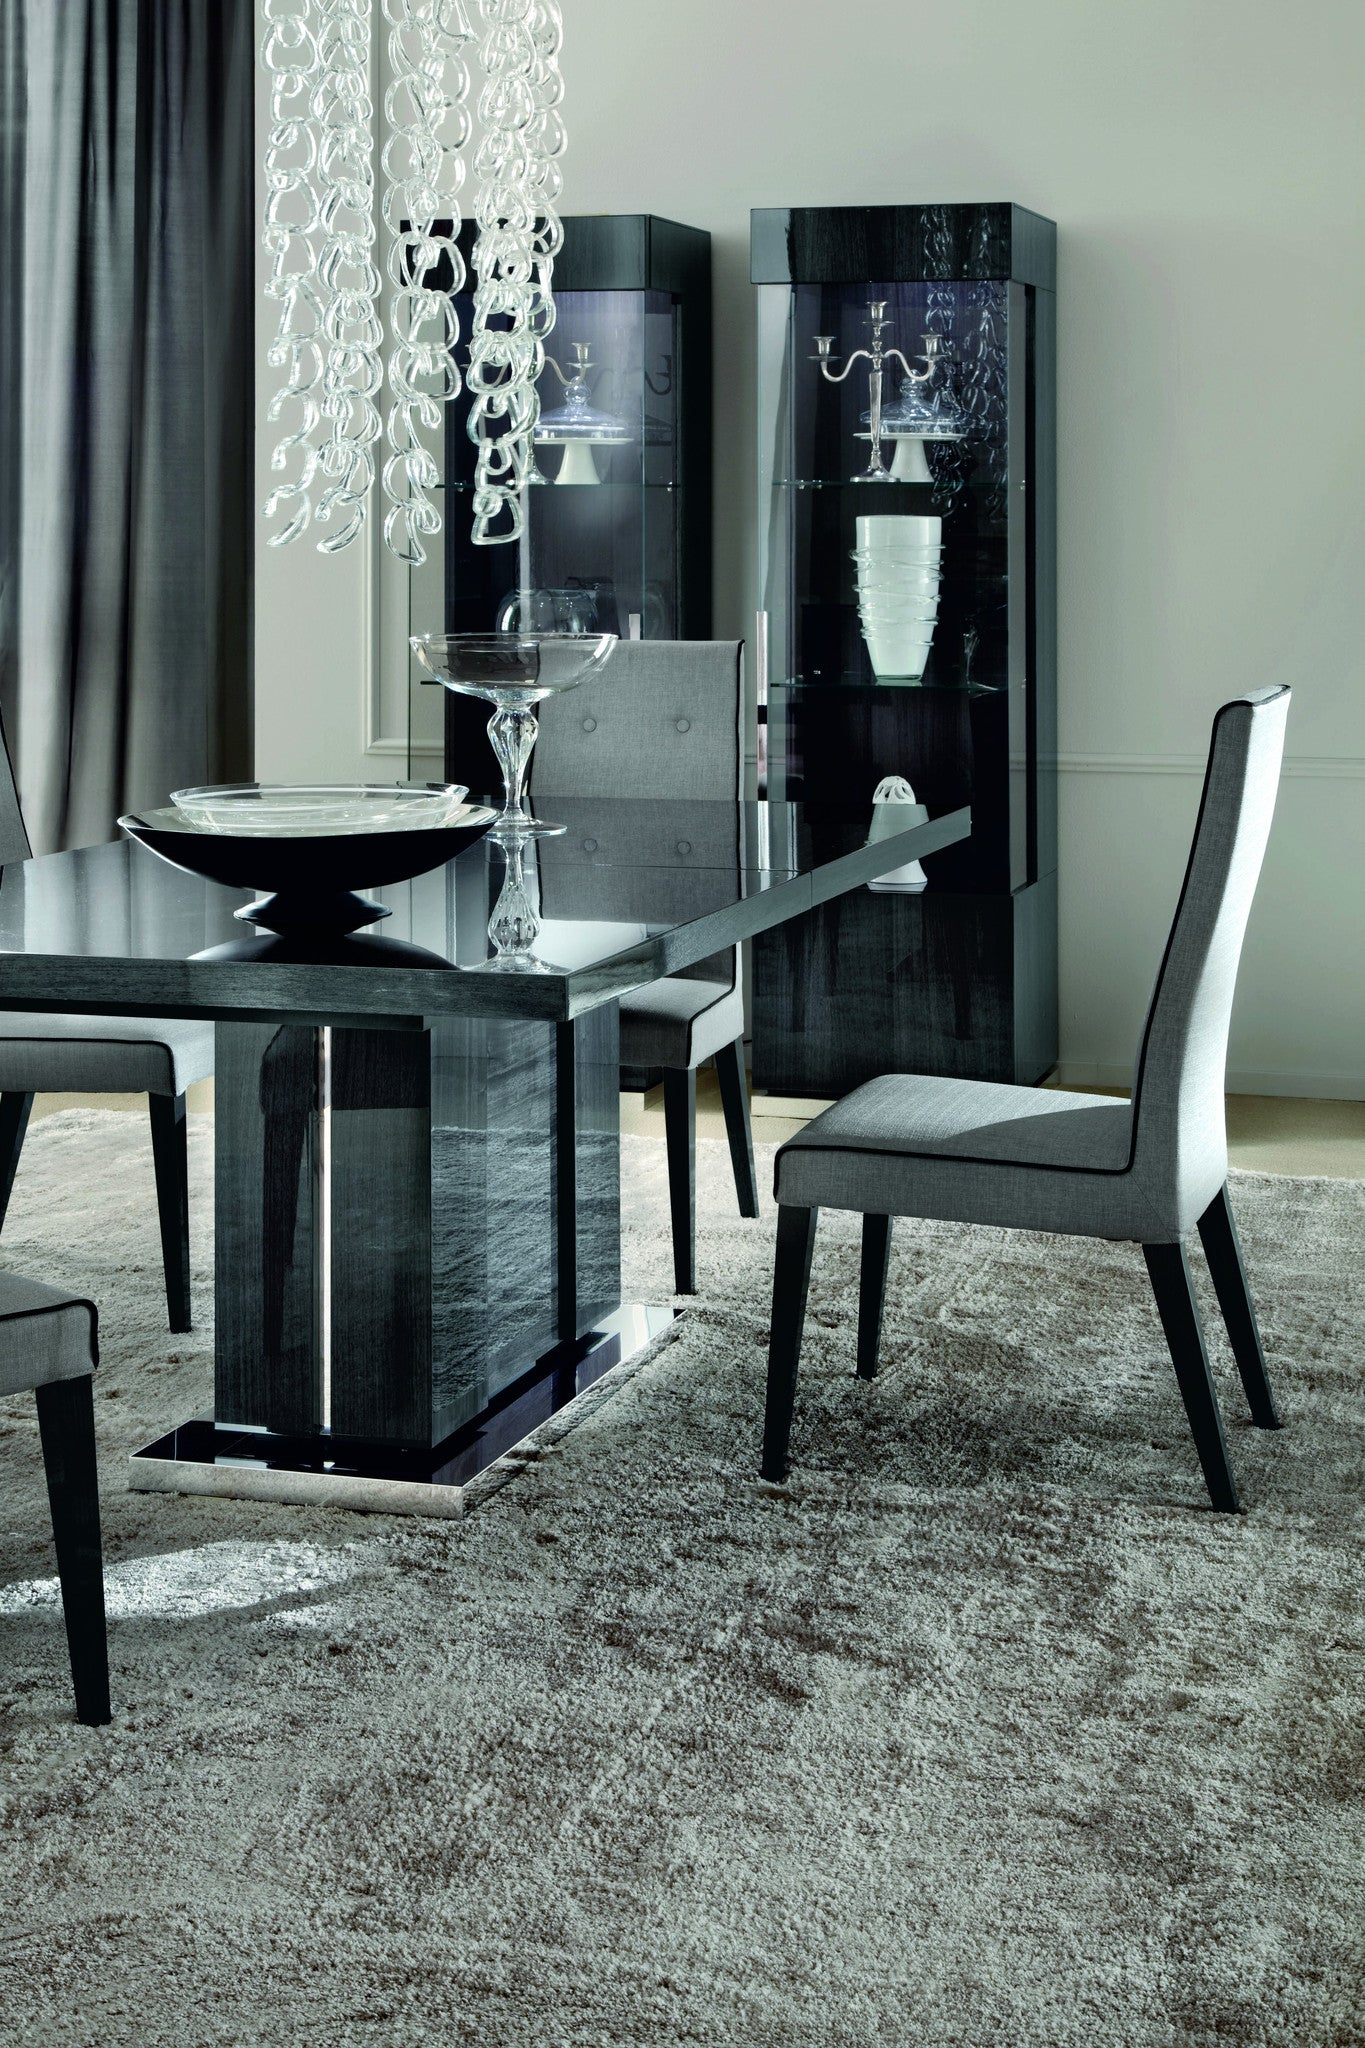 by piece signature dining dinning ashley burnished room item products coviar set design brown number table